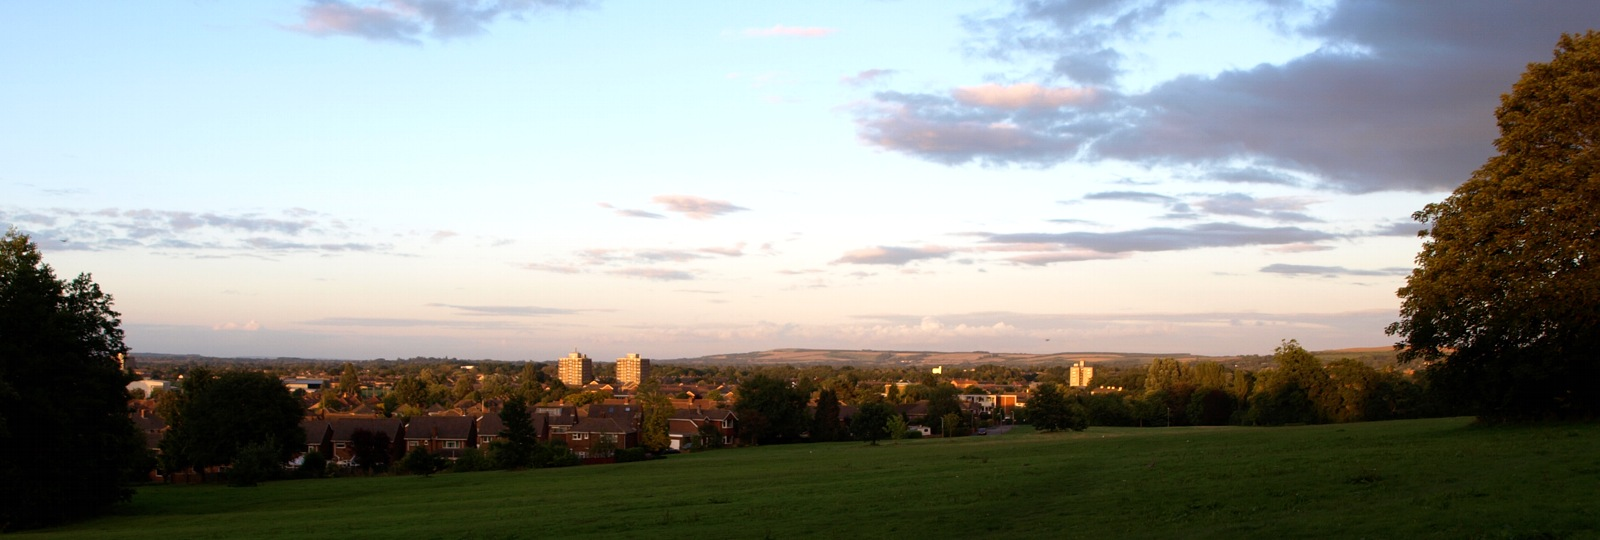 swindon-panorama